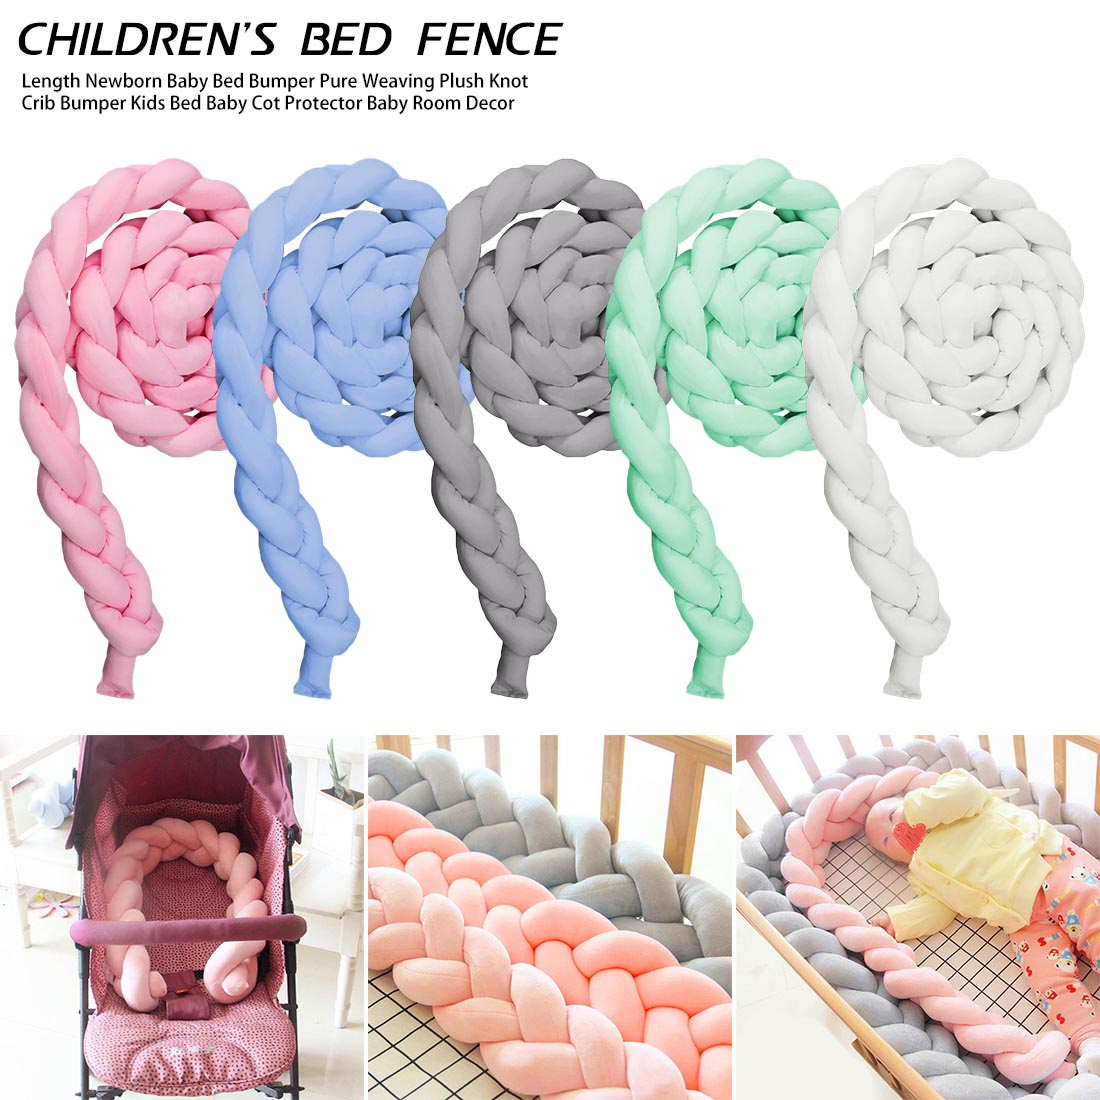 Knot Soft Baby Bed Bumper Crib Sides Newborn Crib Pad Protection Cot Bumpers Bedding For Infant